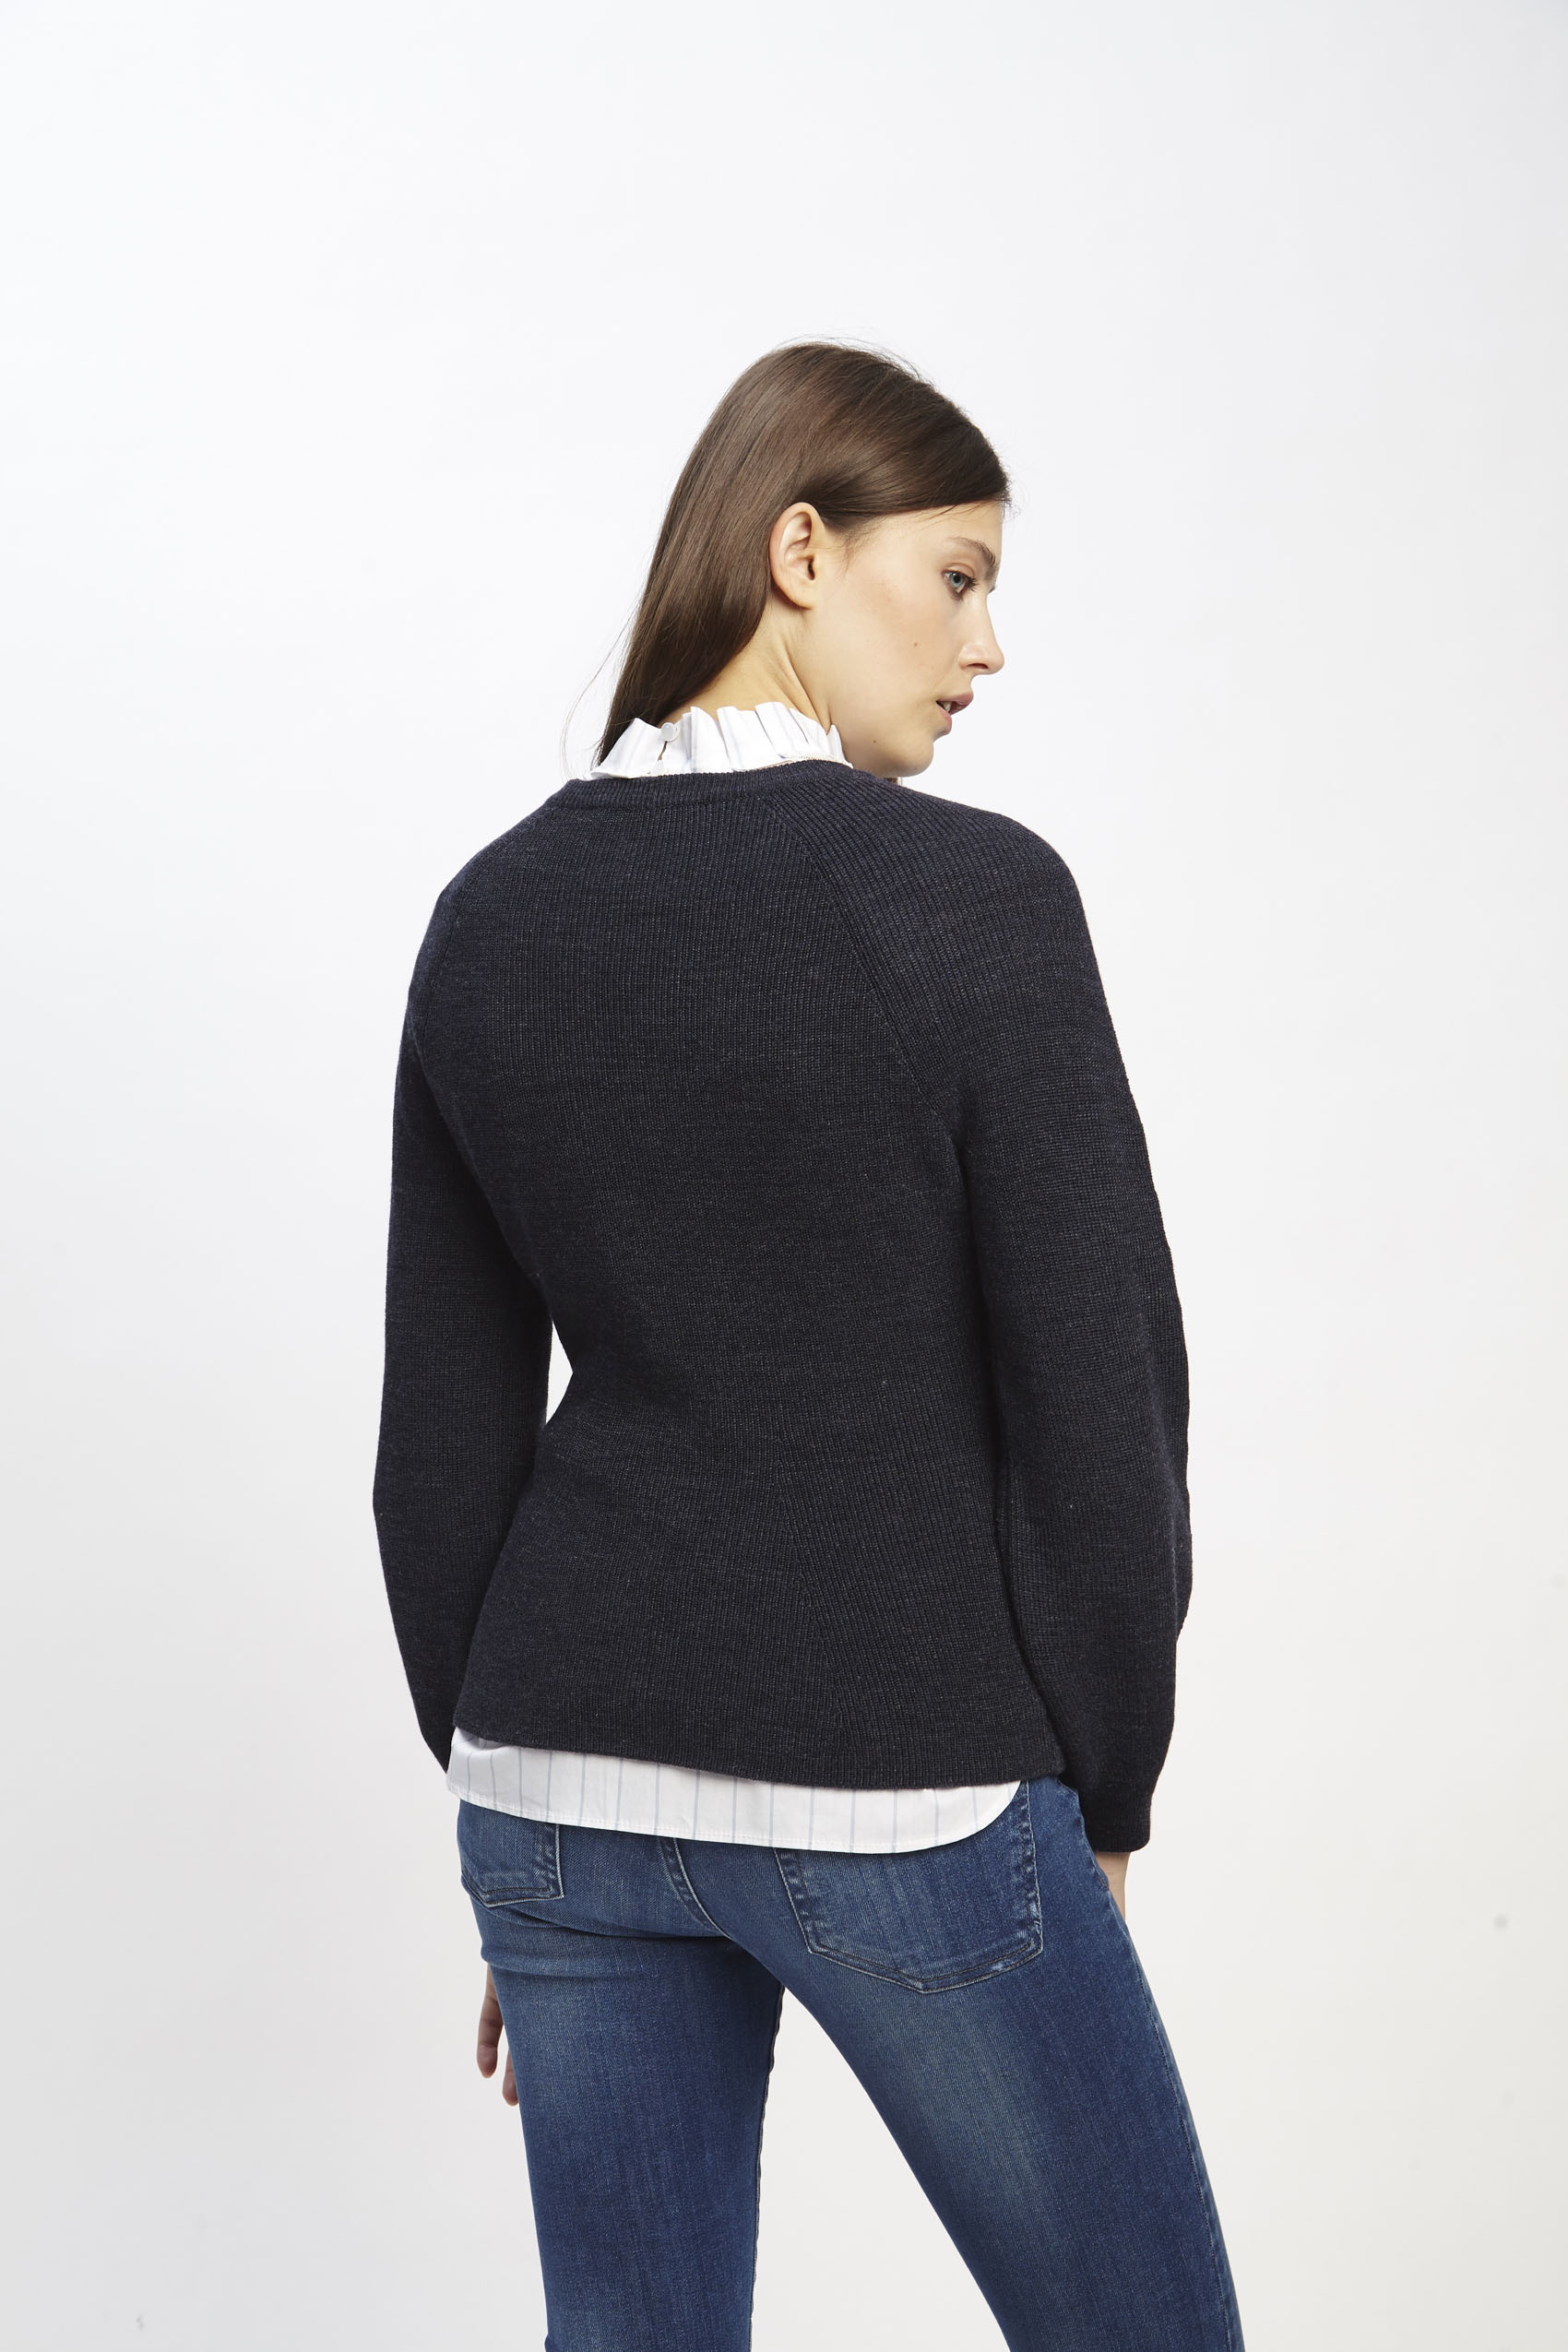 awada_sweater-ella_57-17-2019__picture-2010